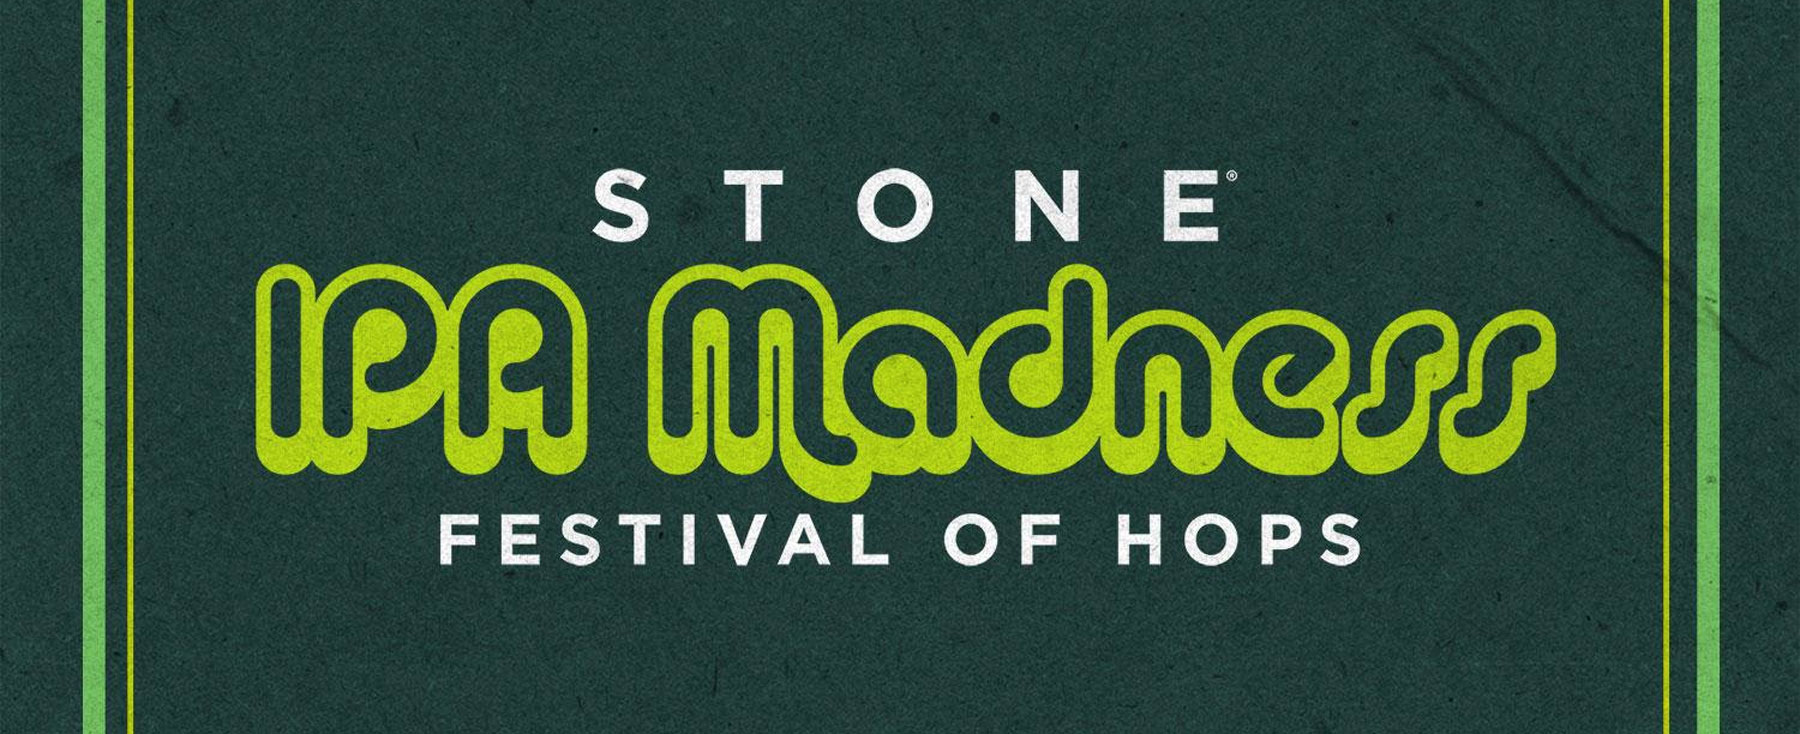 Stone IPA Madness - Festival Of Hops